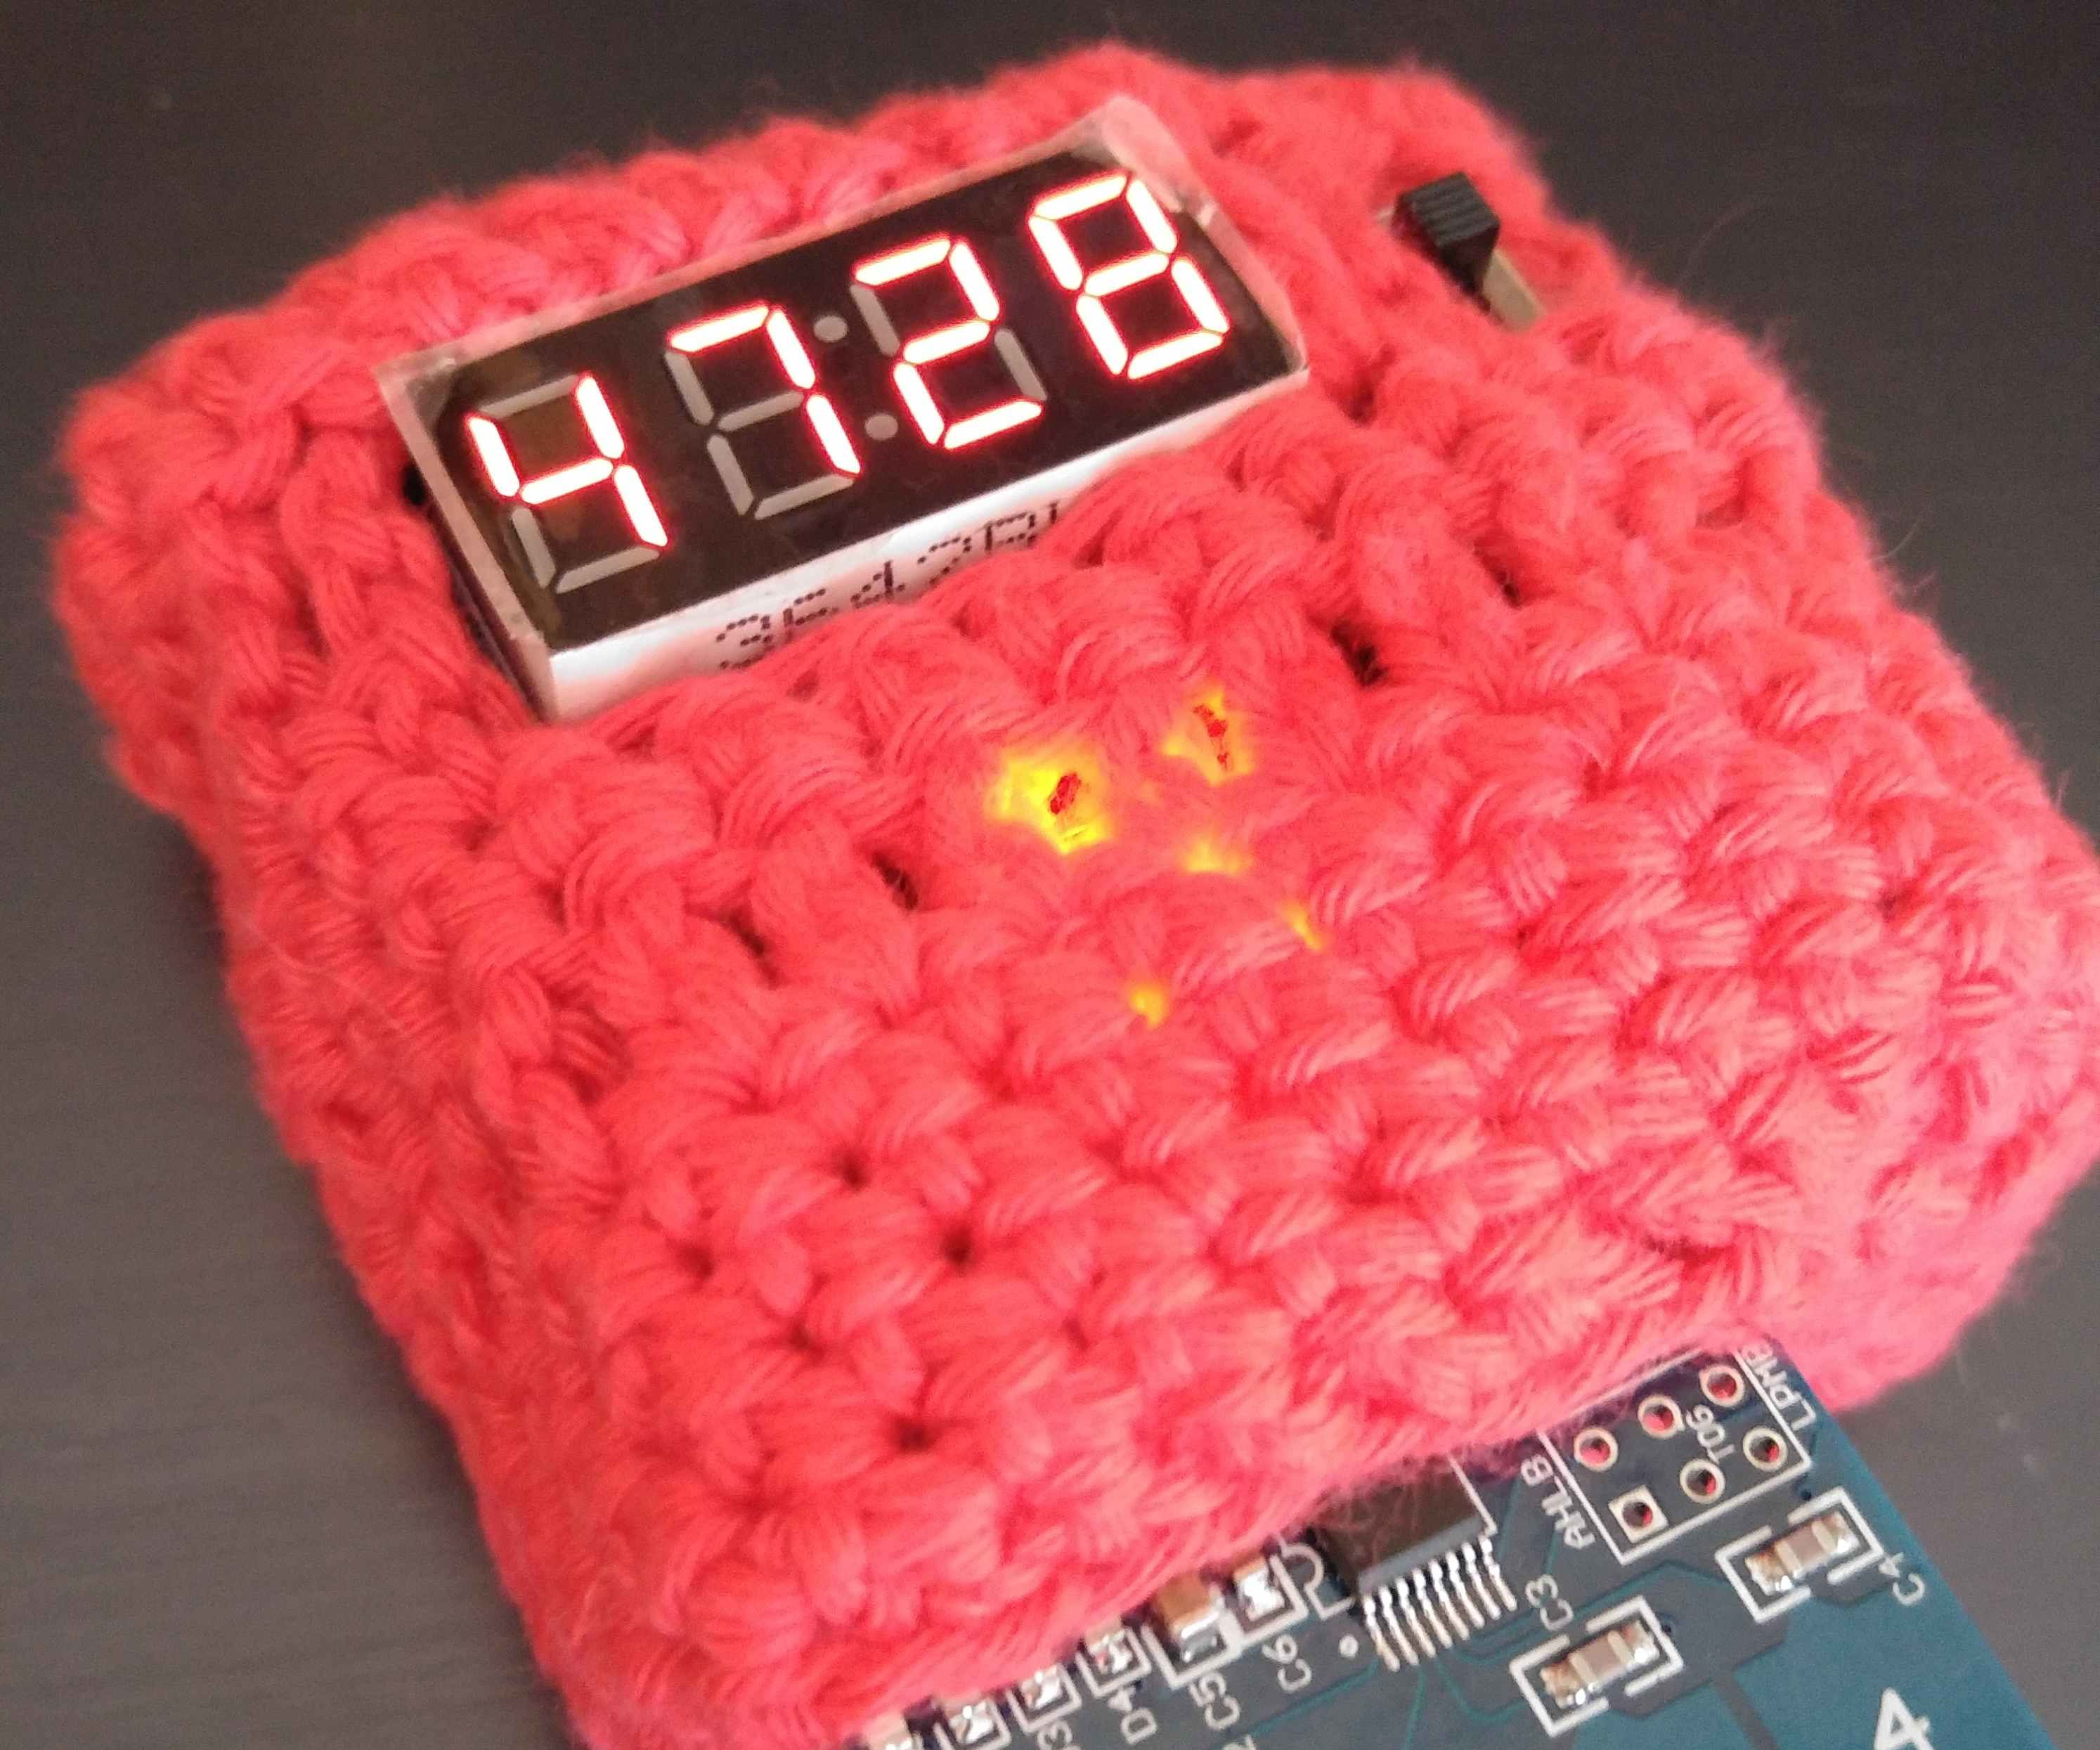 Hand-held lottery number generator and temperature and humidity meter